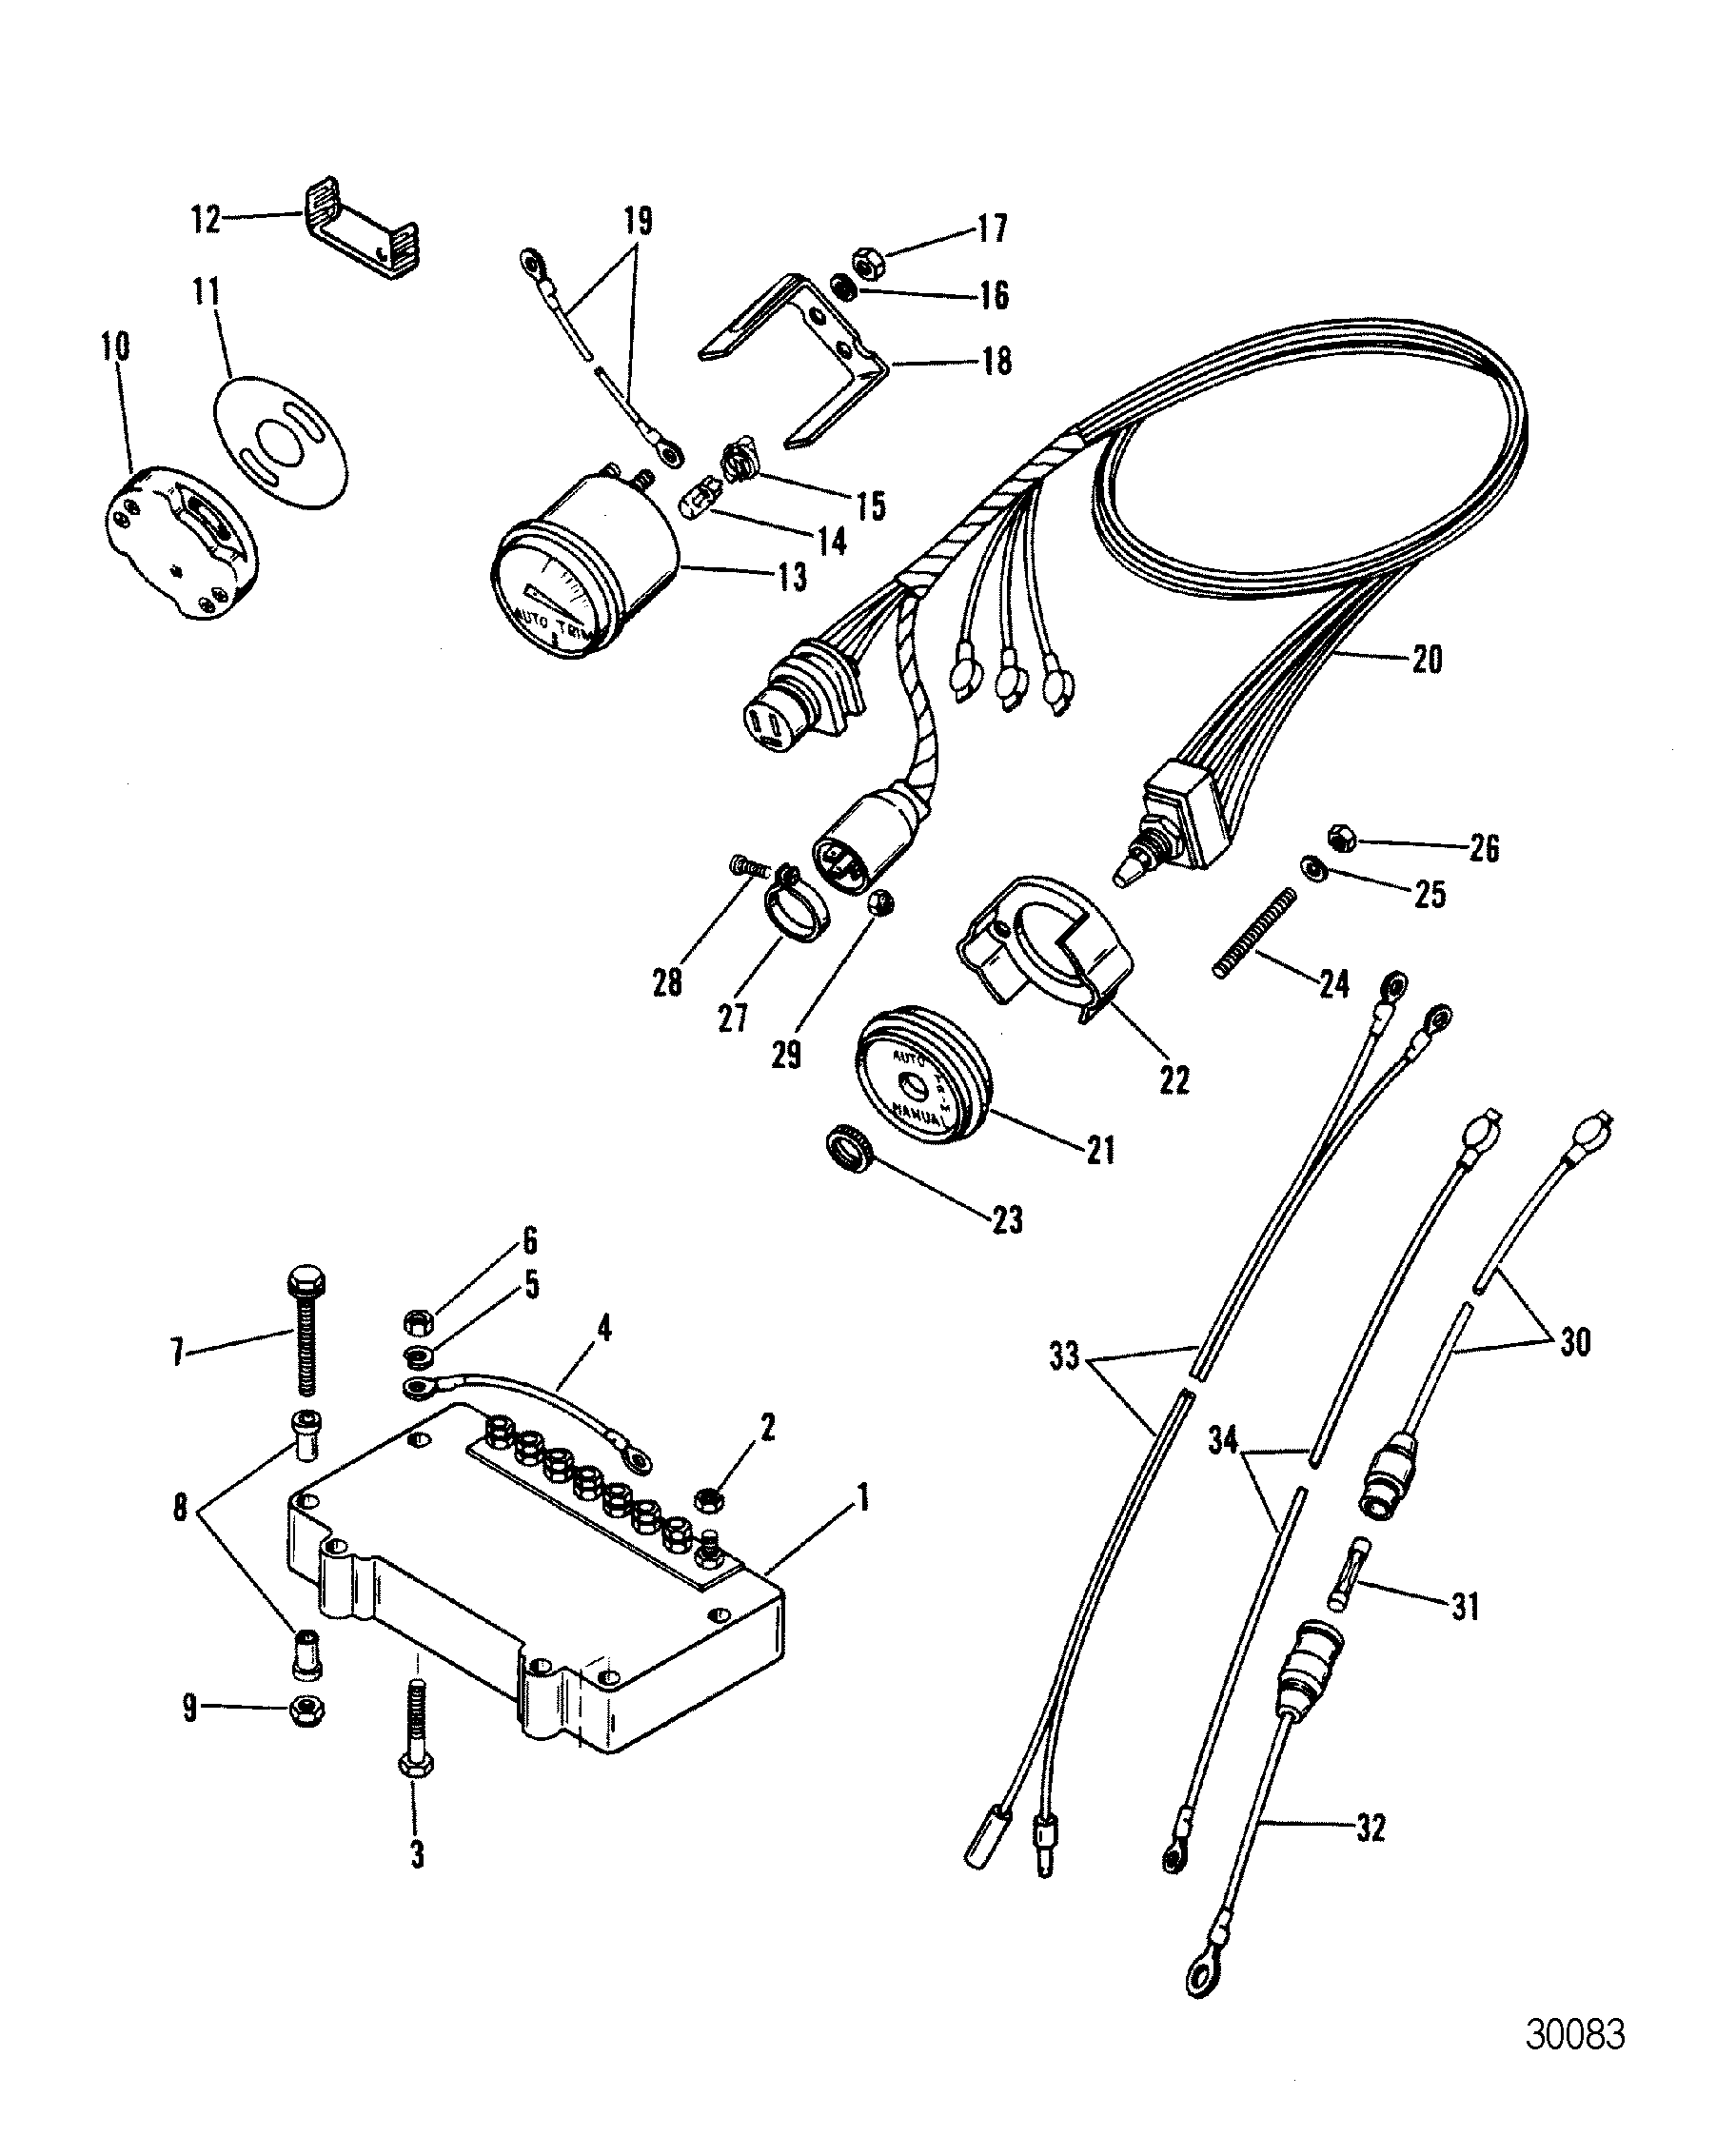 Hardin Marine Auto Trim Components Oildyne Pump Wiring Diagram Section Drawing Hover Or Click To View Larger